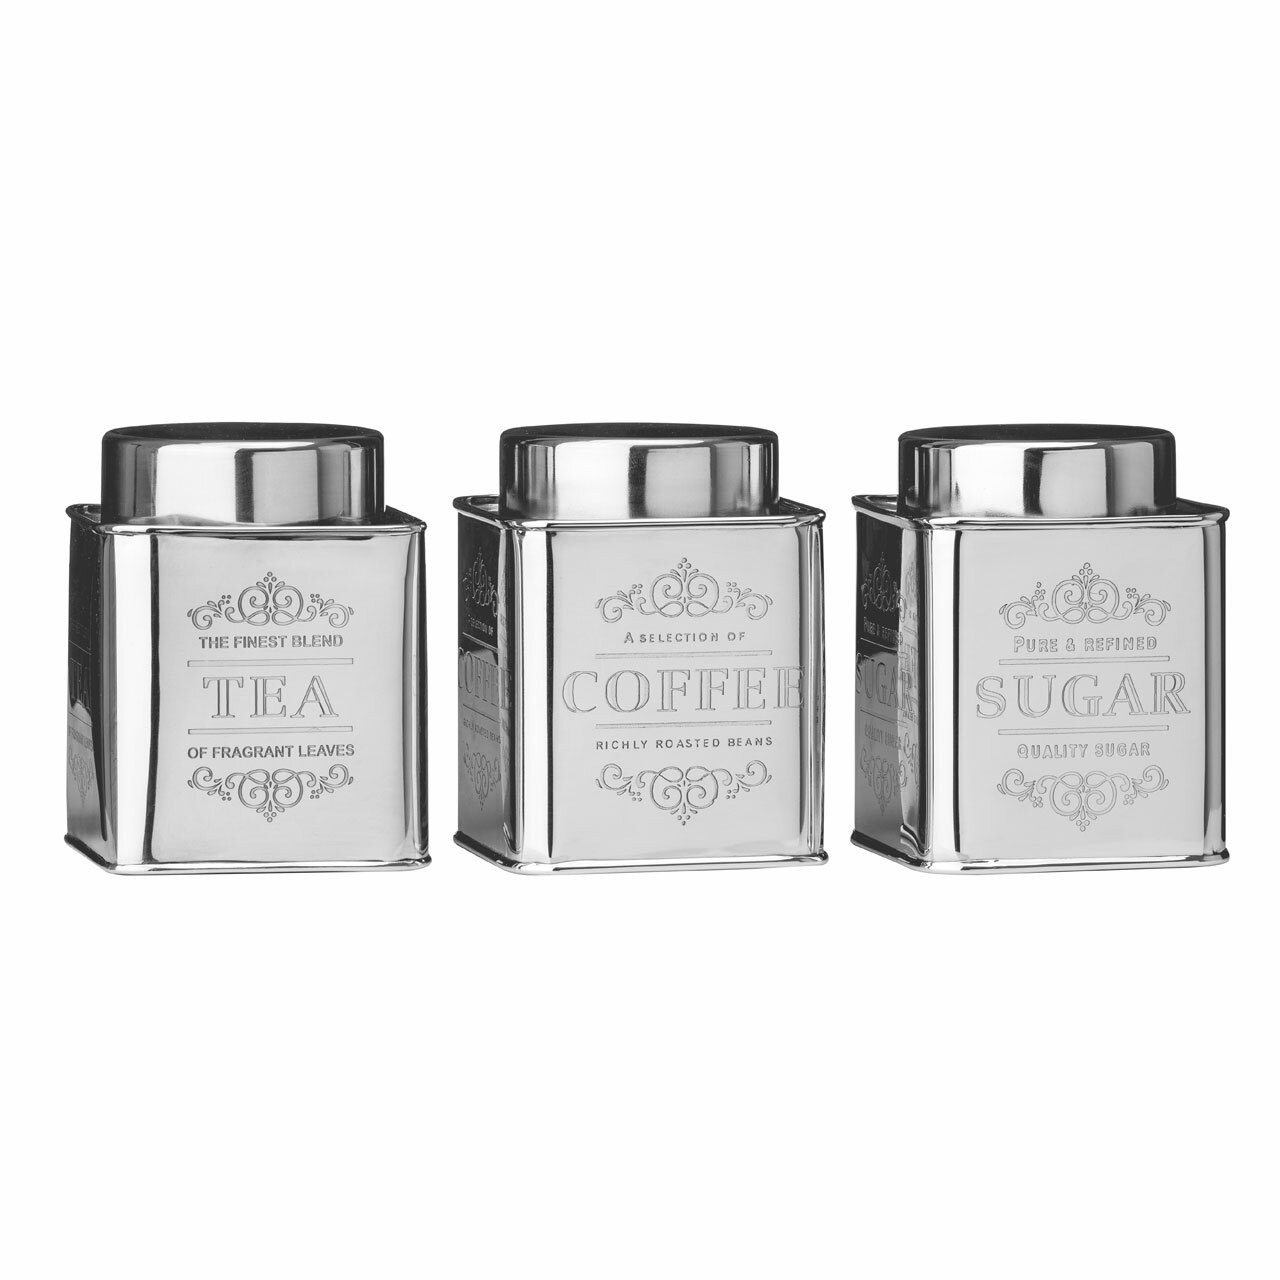 Castleton home chai 3 piece tea coffee sugar stainless steel canister set reviews wayfair co uk